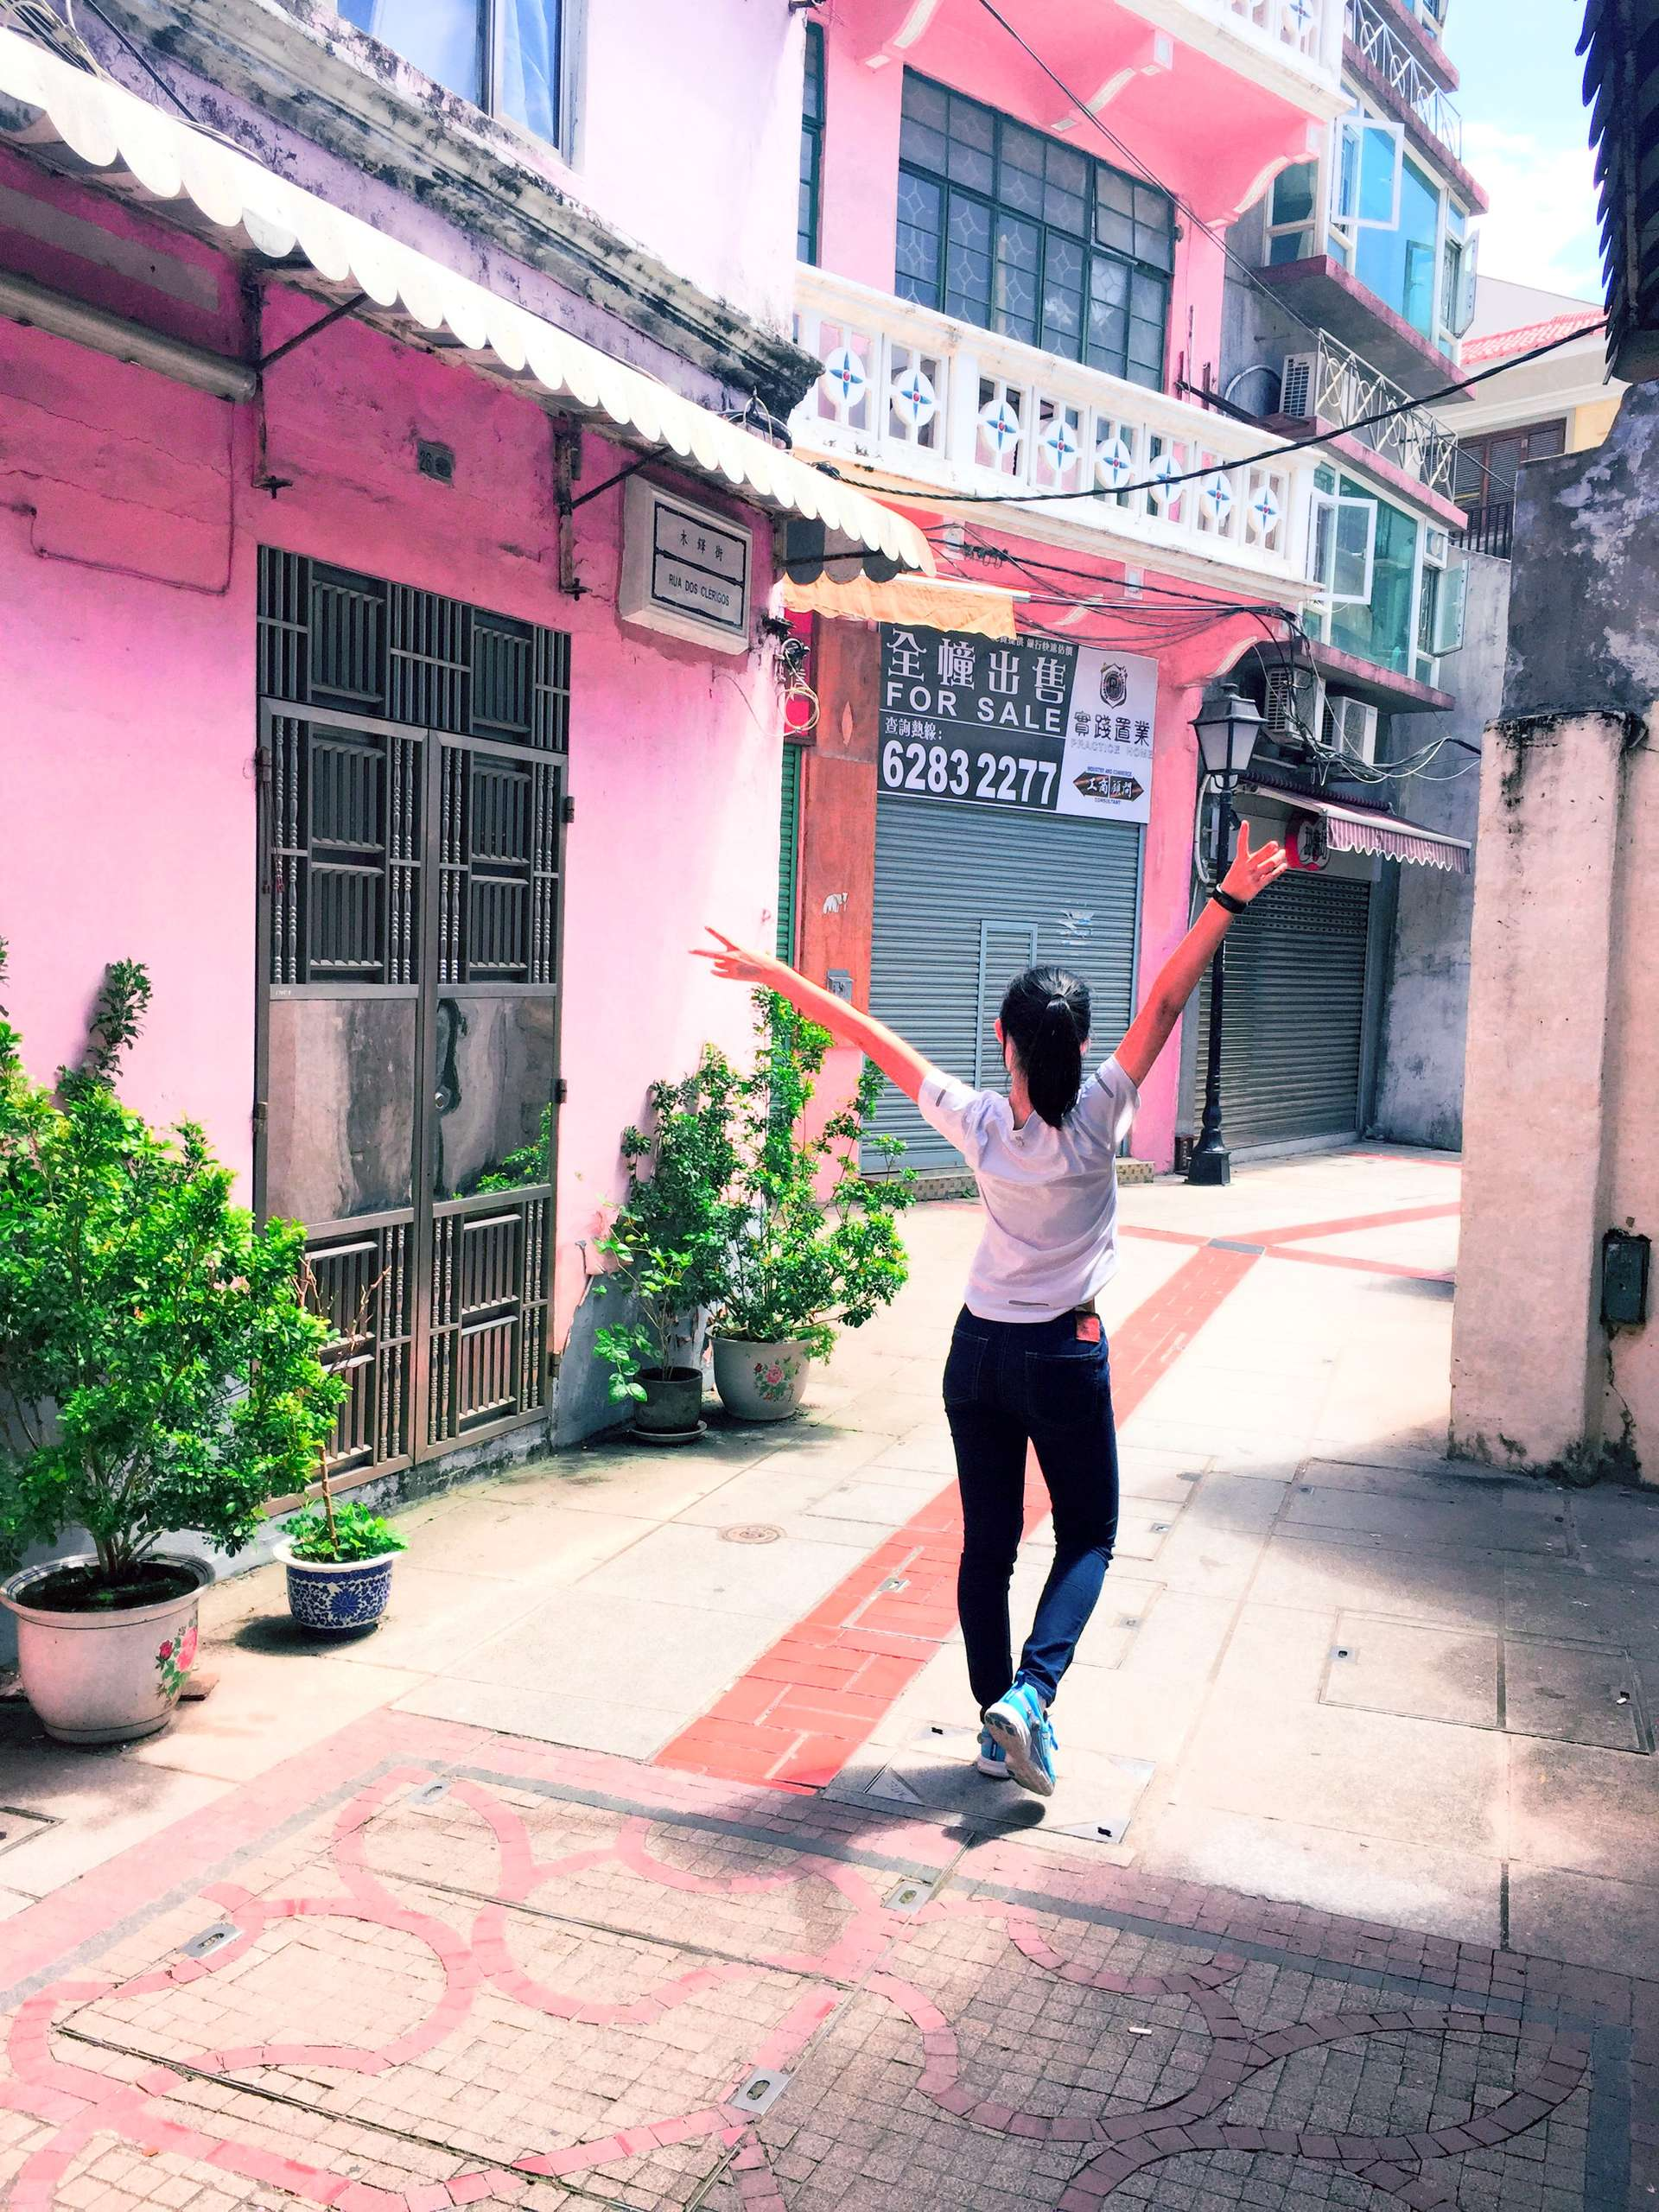 A girl in Macau walks down the street wearing a white t-shirt, dark blue jeans, and light blue shoes.